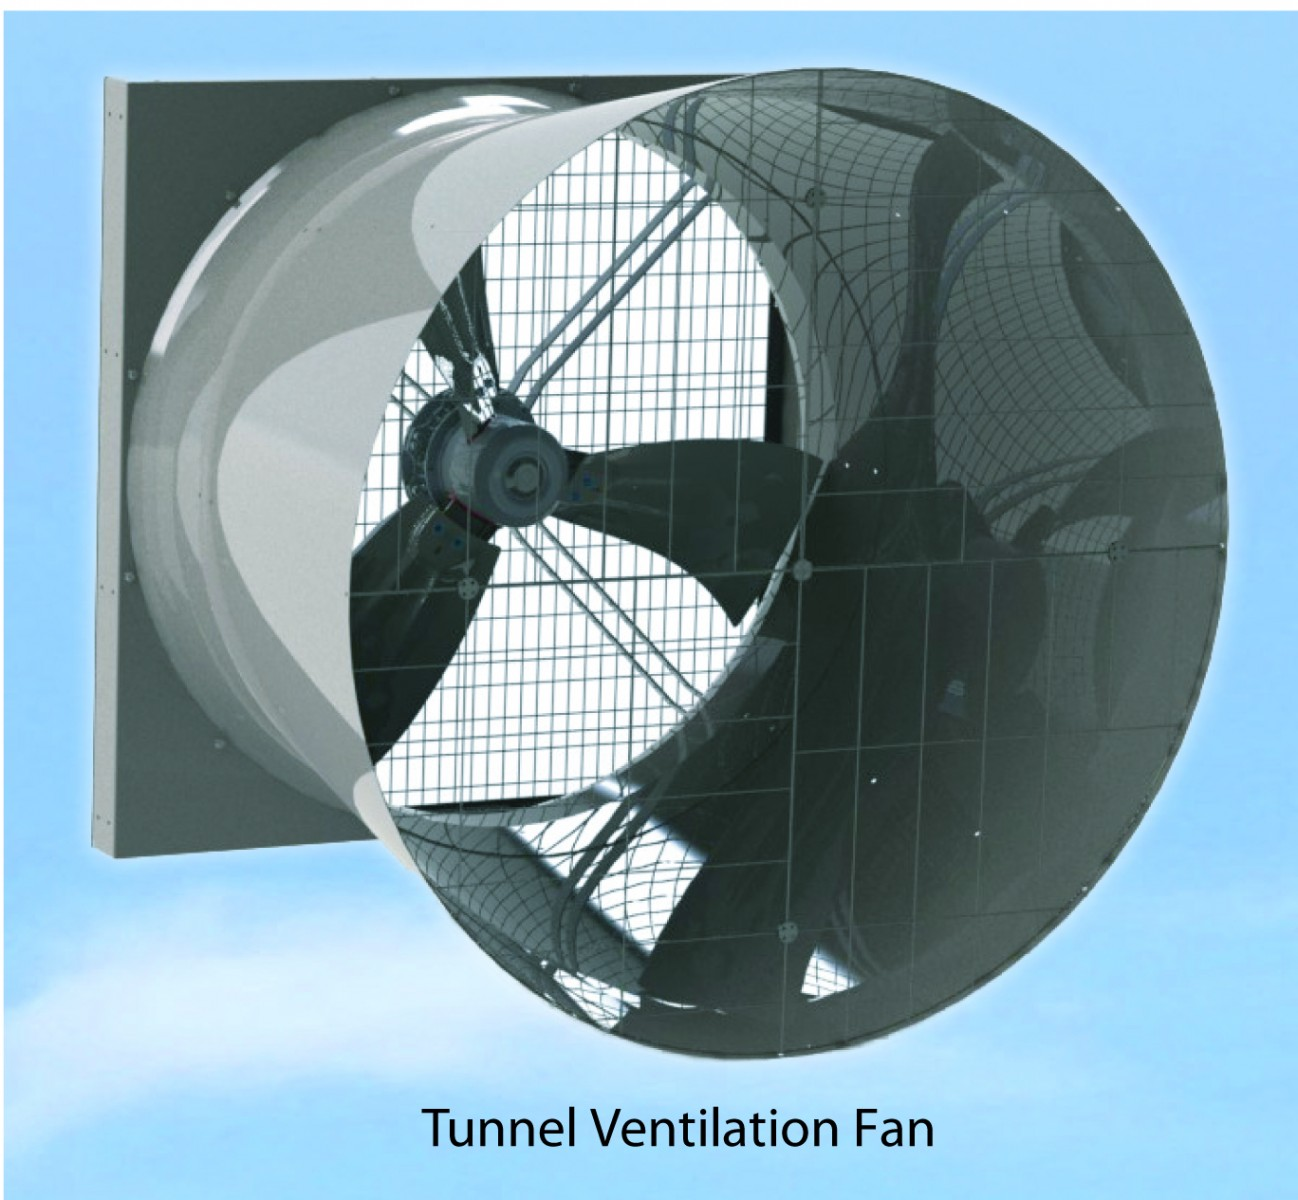 Tunnel Ventilation Fans : Protective fabrications ebm papst